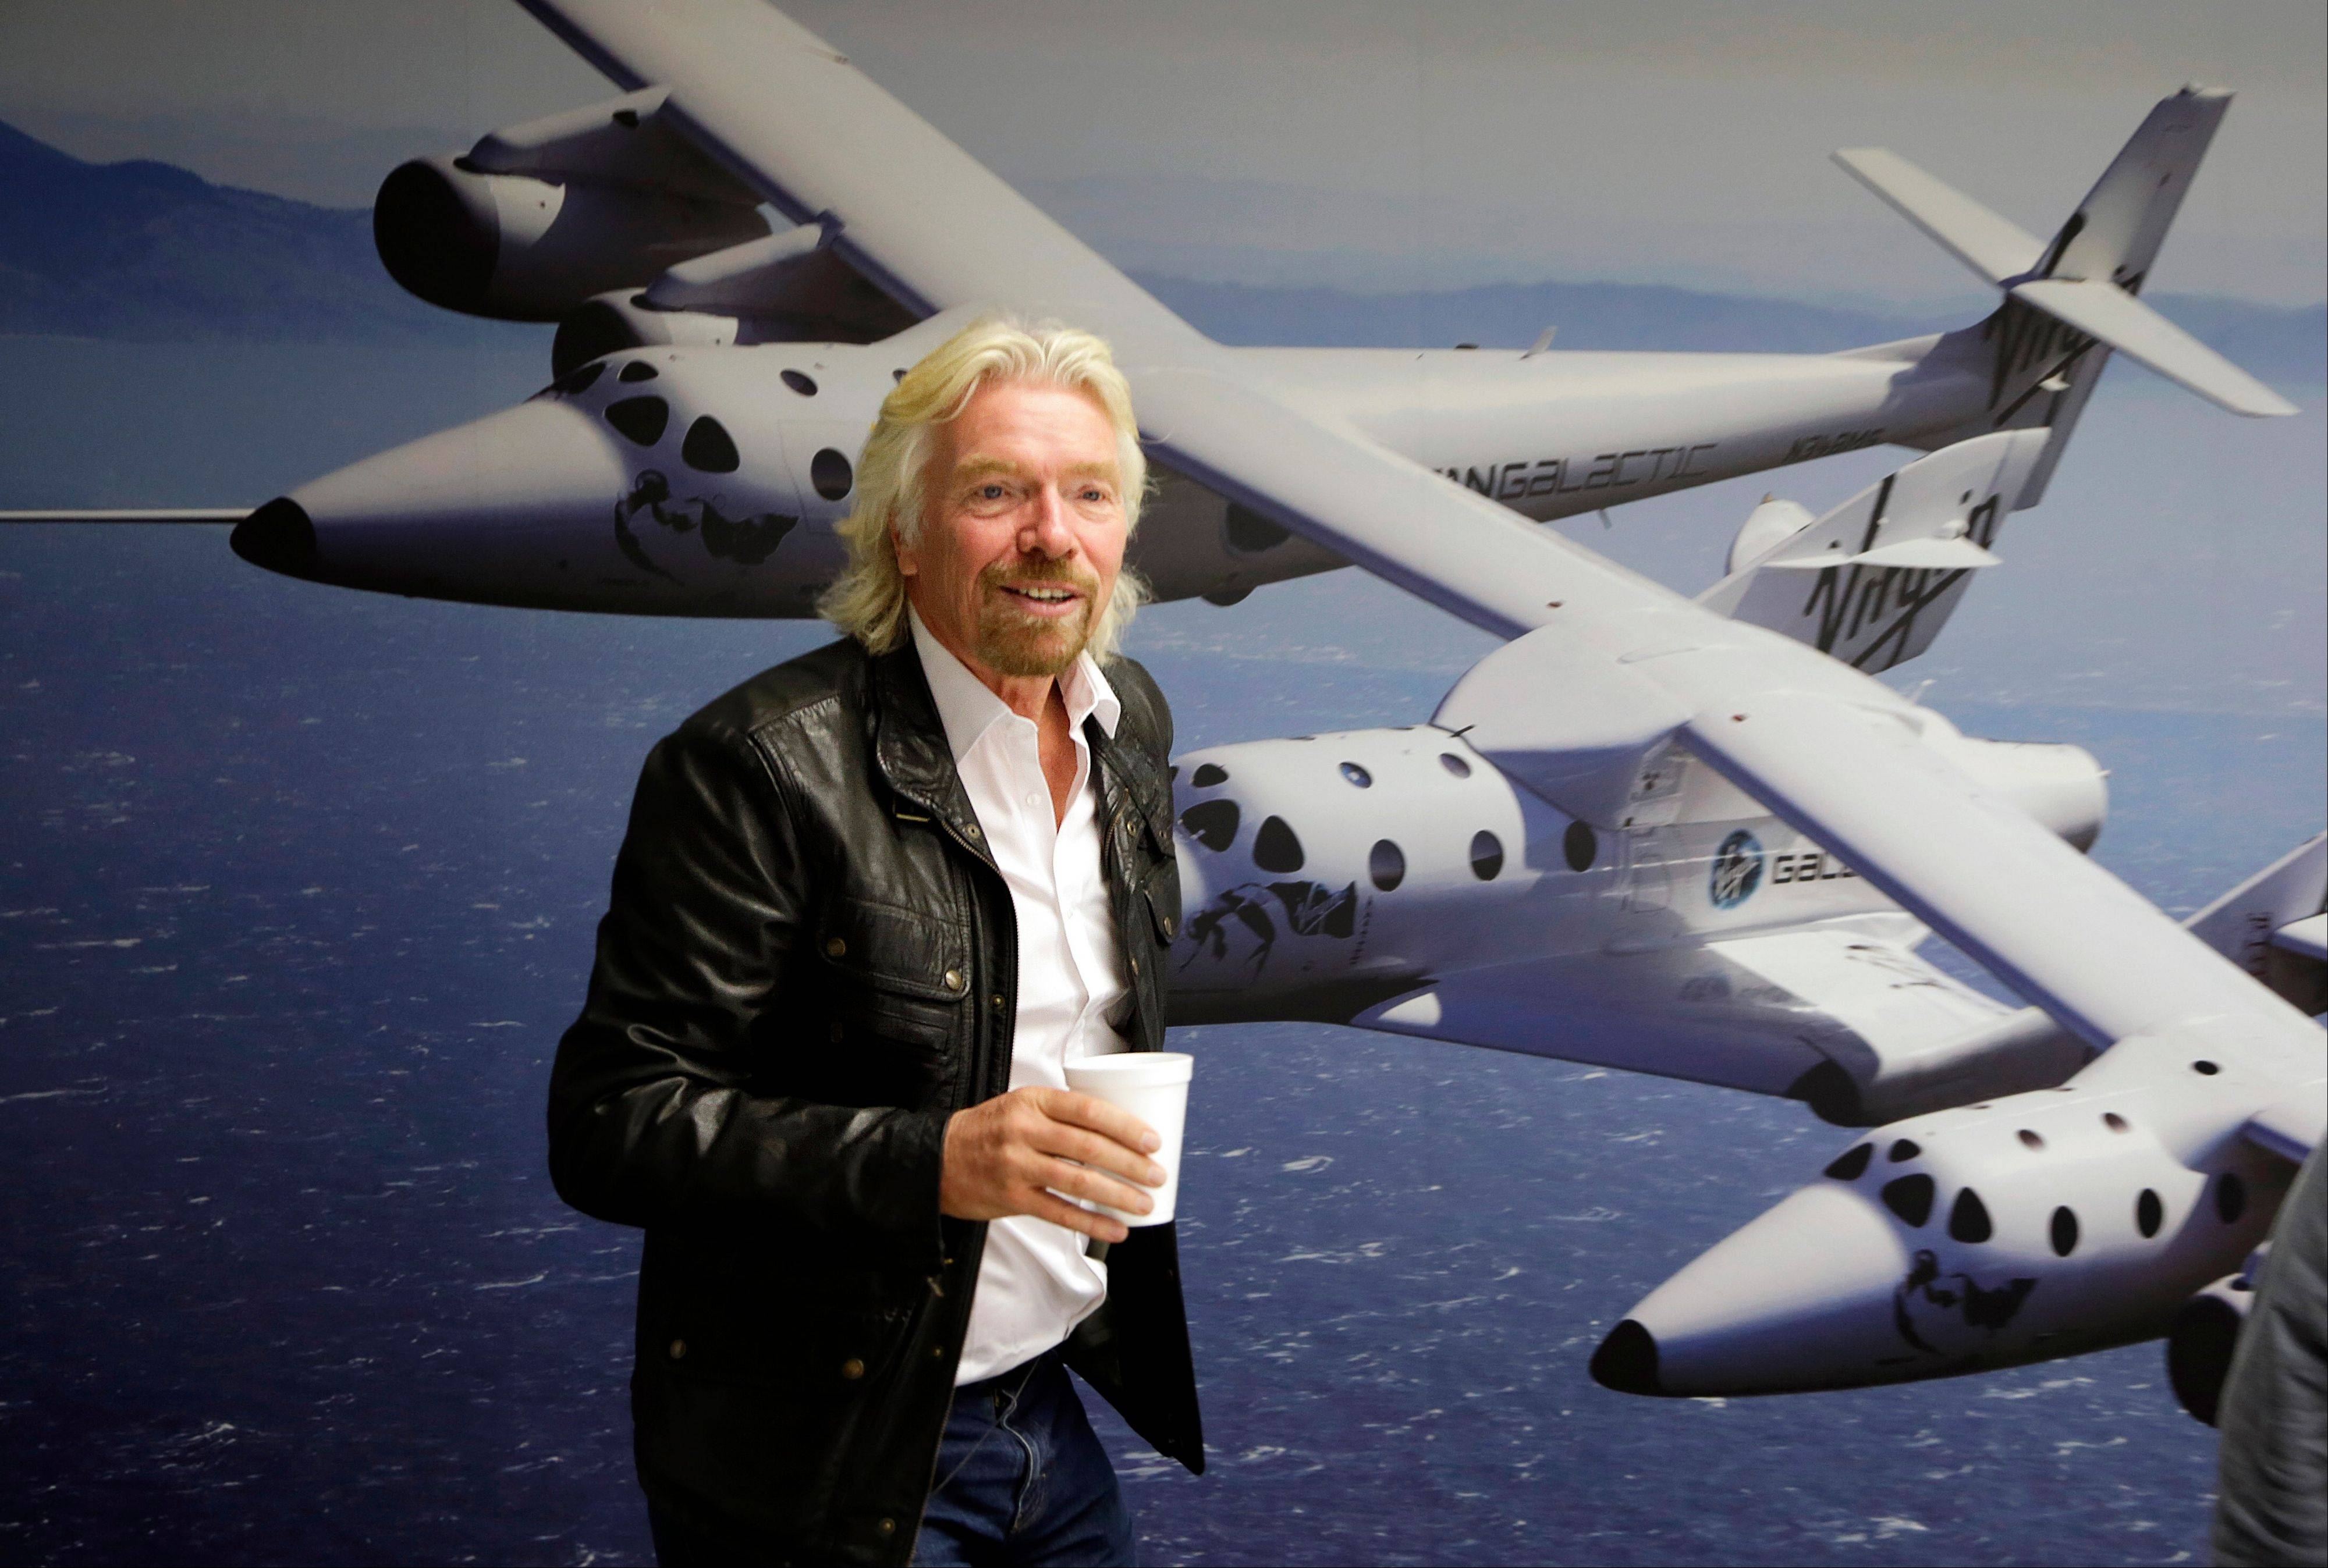 NBC says it will air a competition show with an out-of-this-world prize: a ride into space. The network said Thursday that TV producer Mark Burnett is teaming with Richard Branson�s Virgin Galactic on �Space Race,� a game where the winner will get a ride on Virgin�s aircraft atop the Earth�s atmosphere.